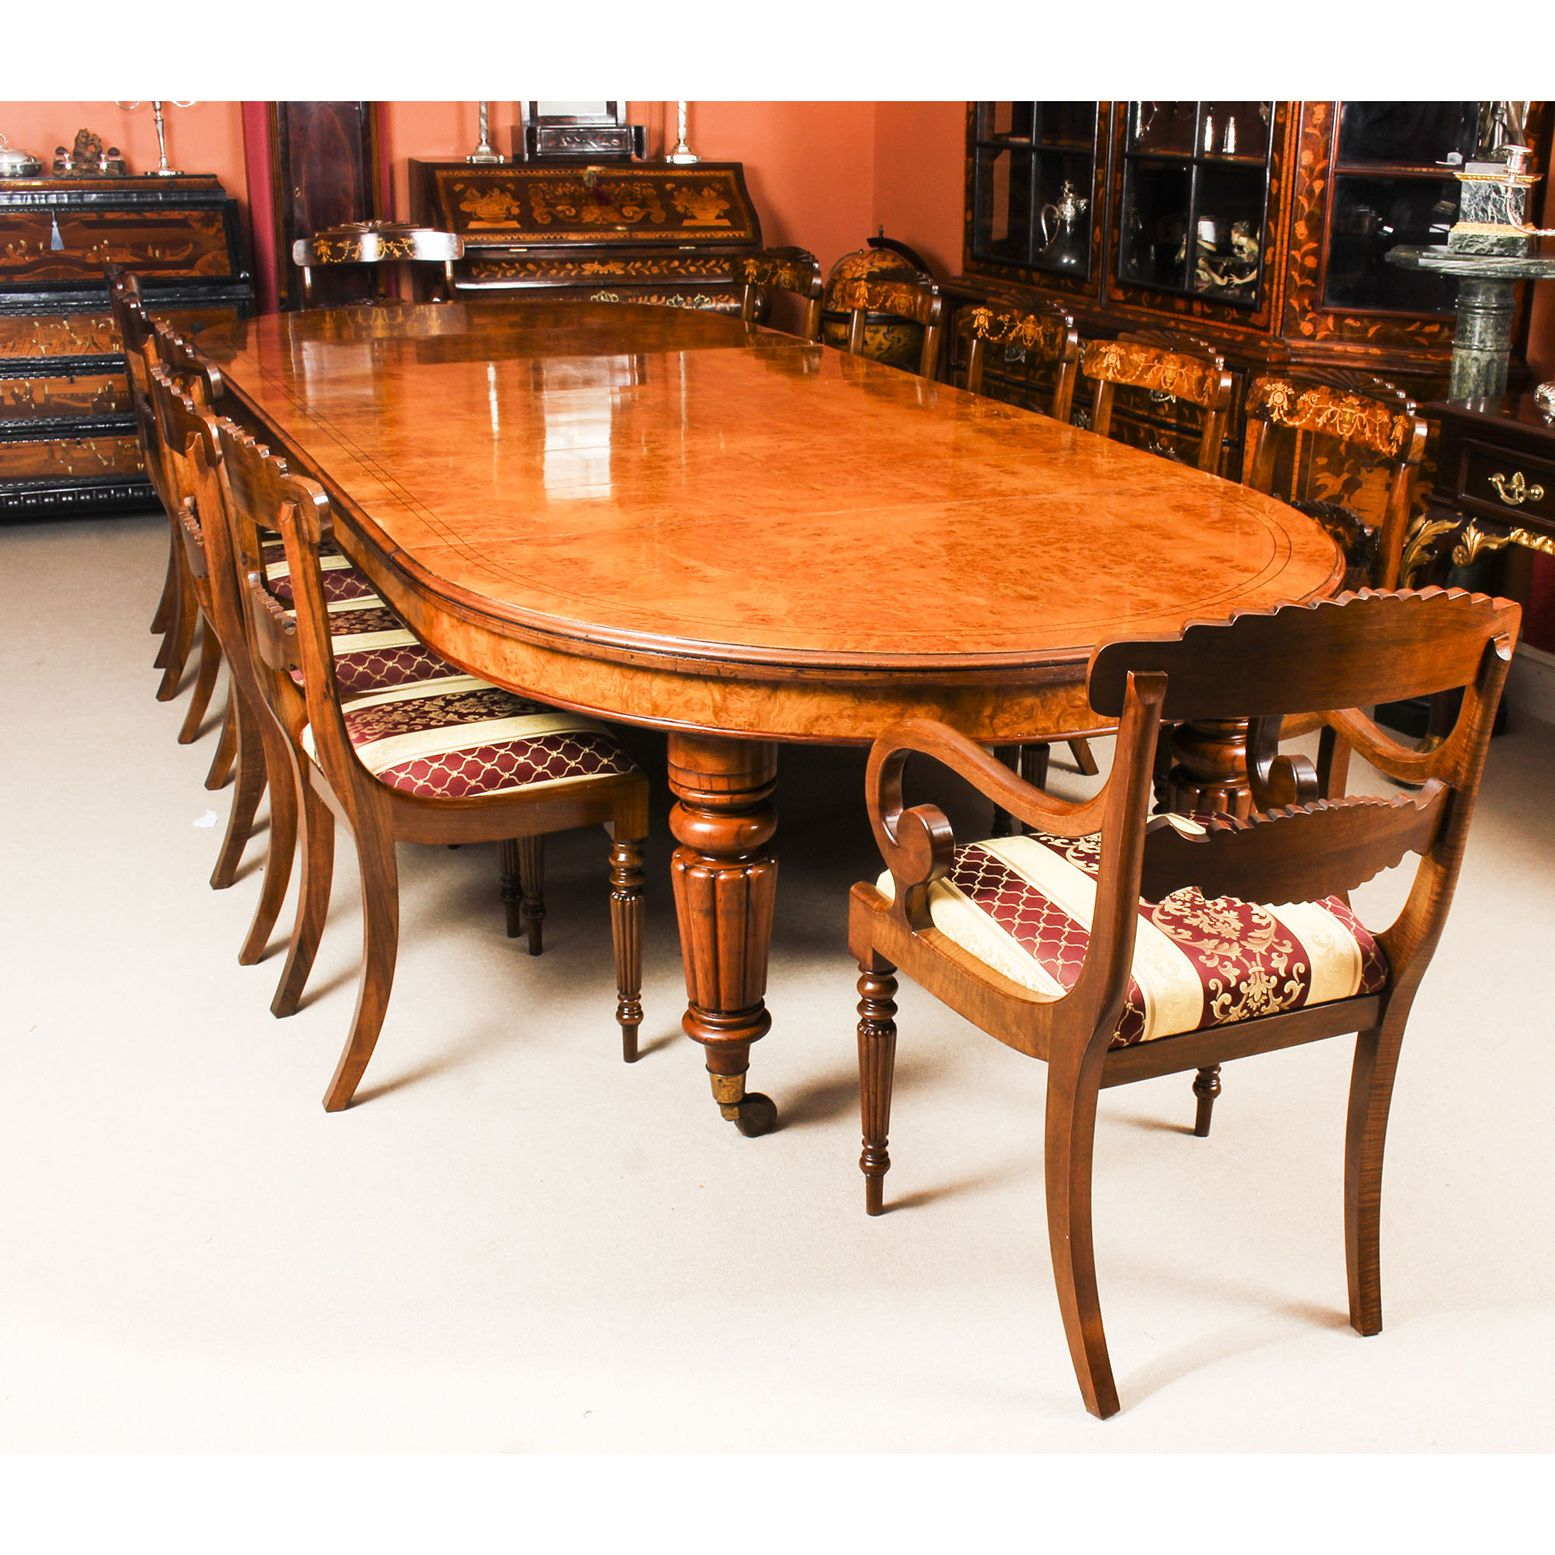 Antique Pollard Oak Victorian Dining Table 19th C 12 Bespoke Chairs In 2020 Dining Table Victorian Dining Tables Oak Extending Dining Table